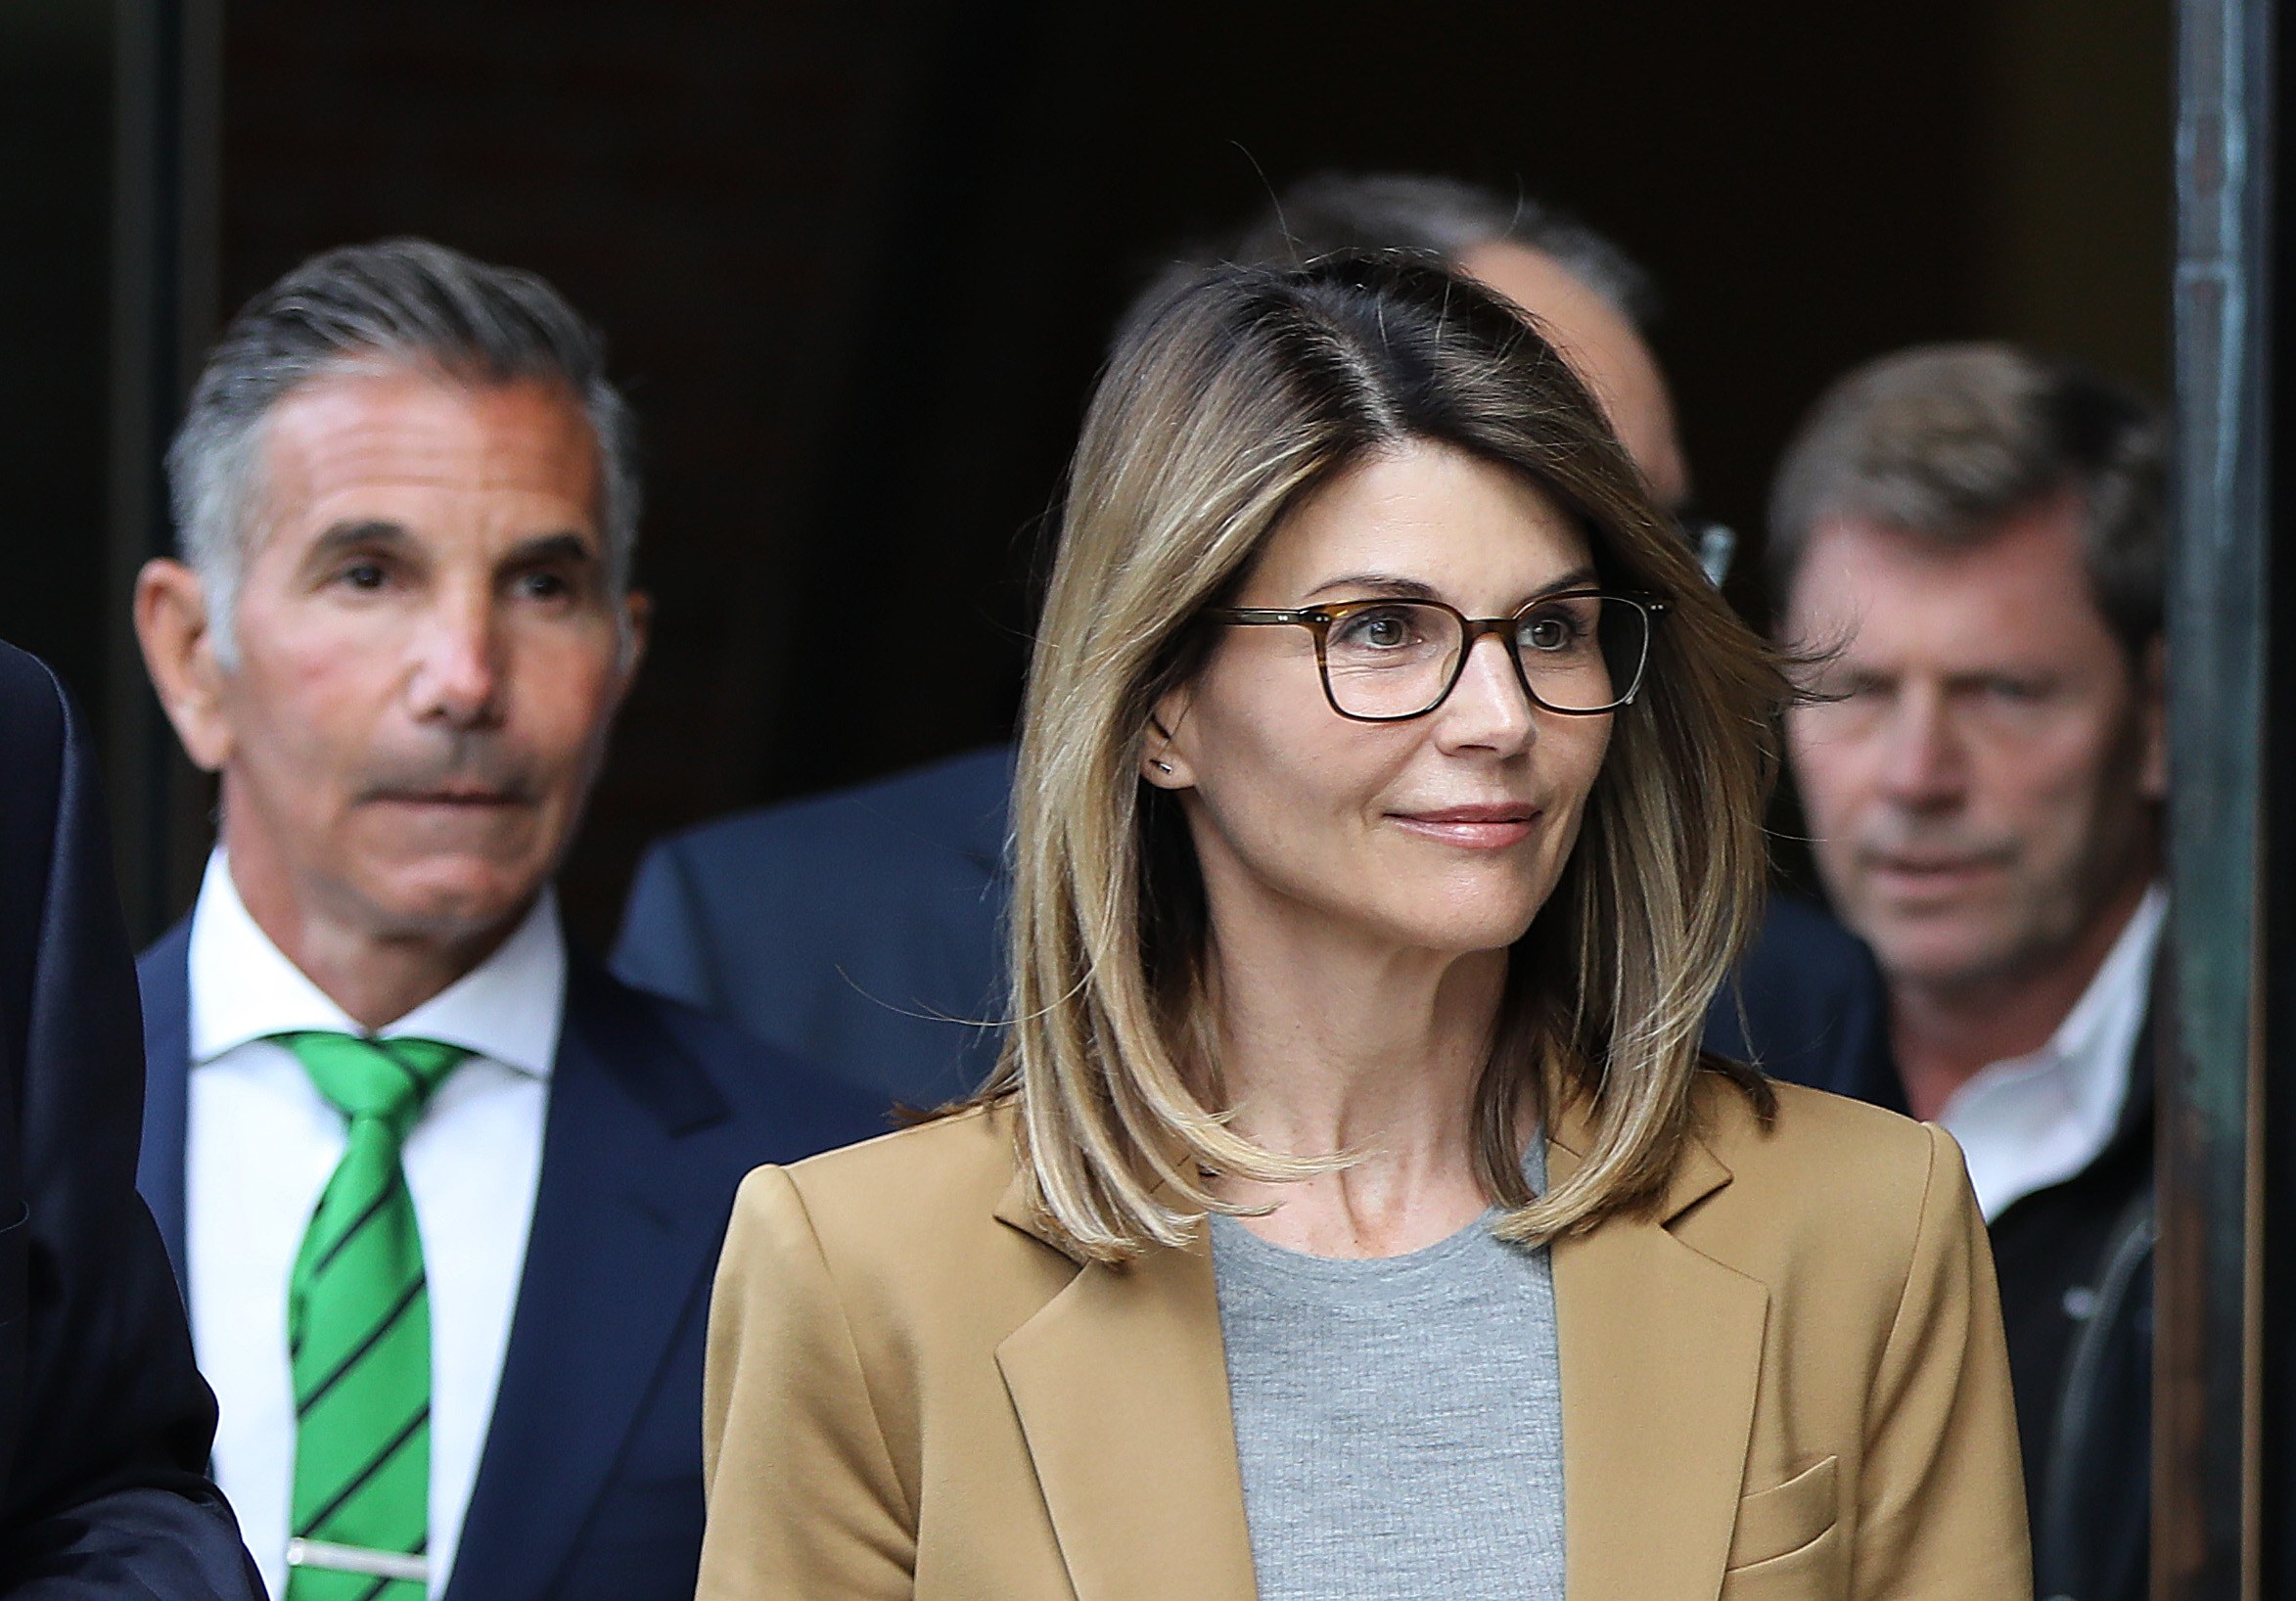 Lori Loughlin Pleads Not Guilty to All Charges Against Her